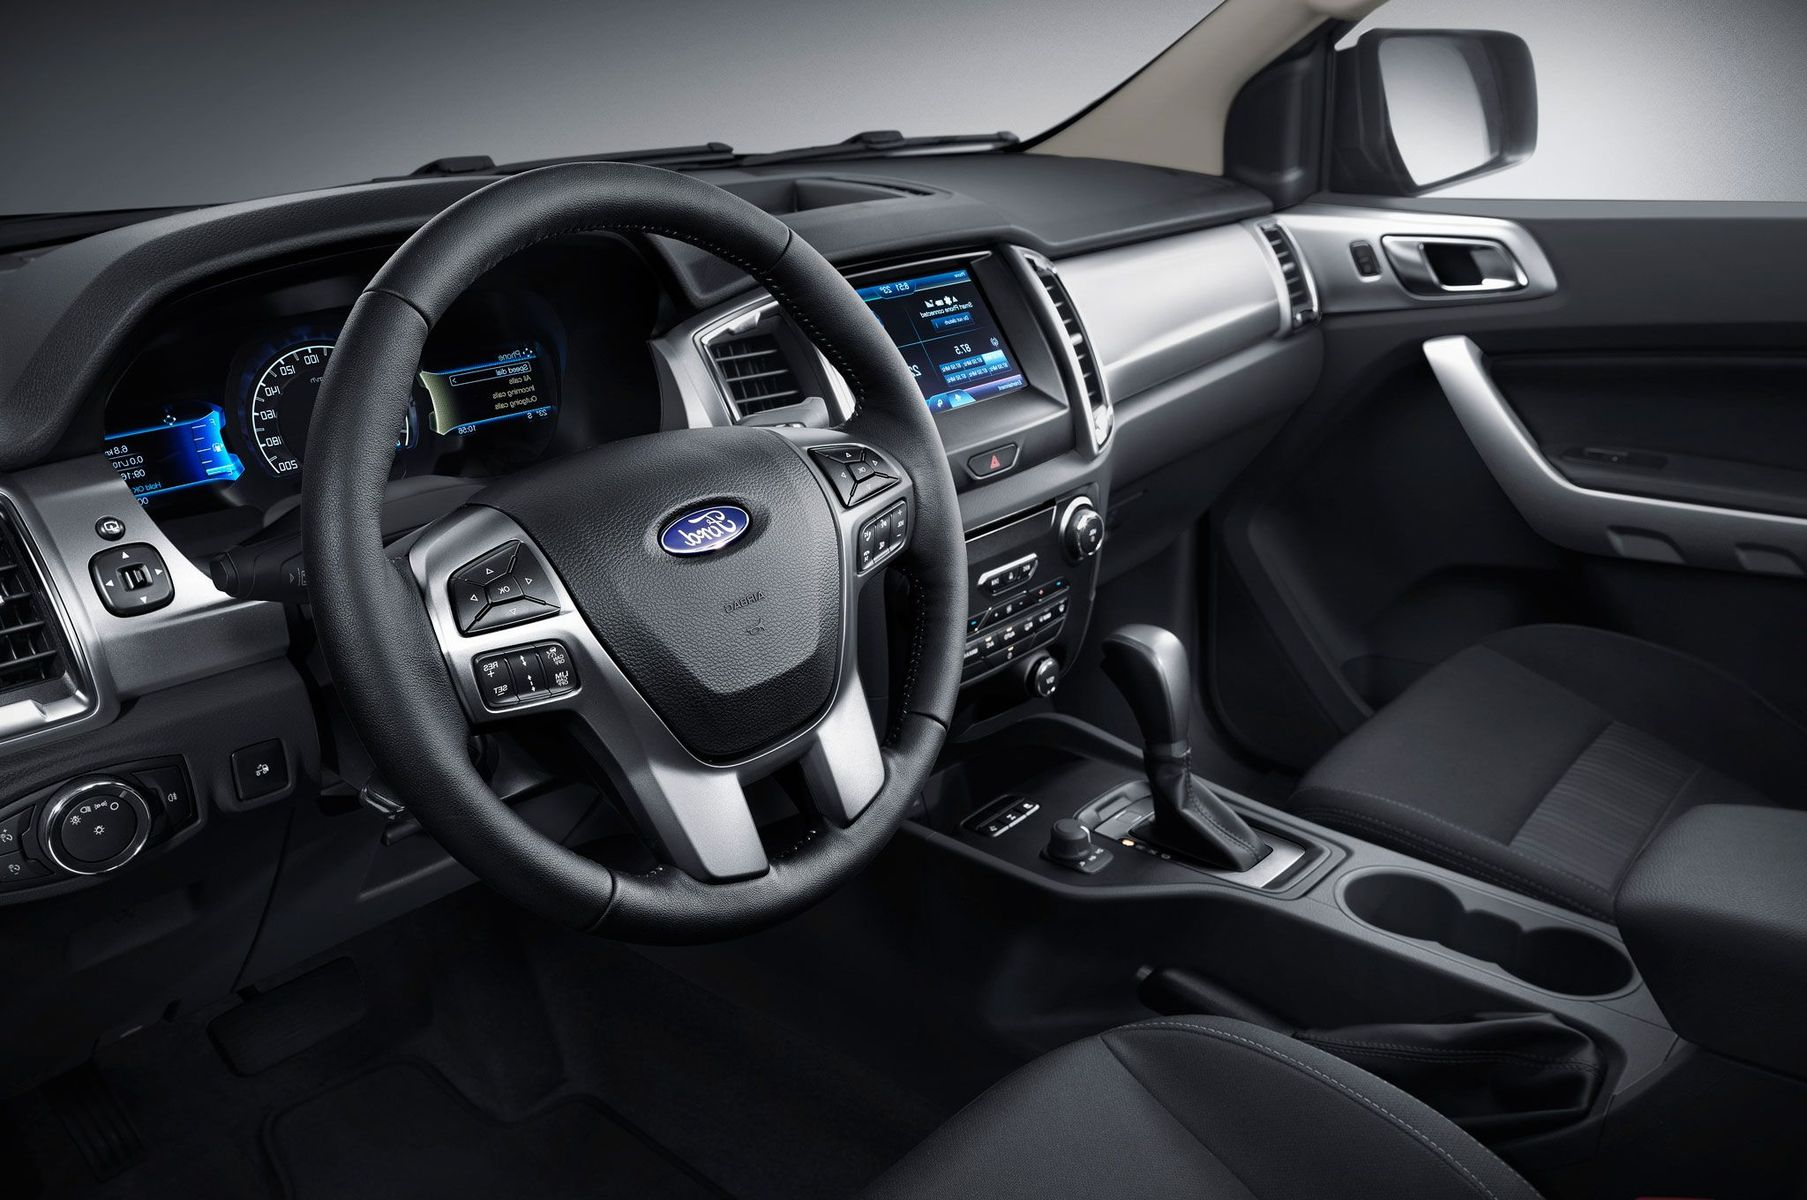 2019 Ford Everest Interior Dashboard Changes and New Feature